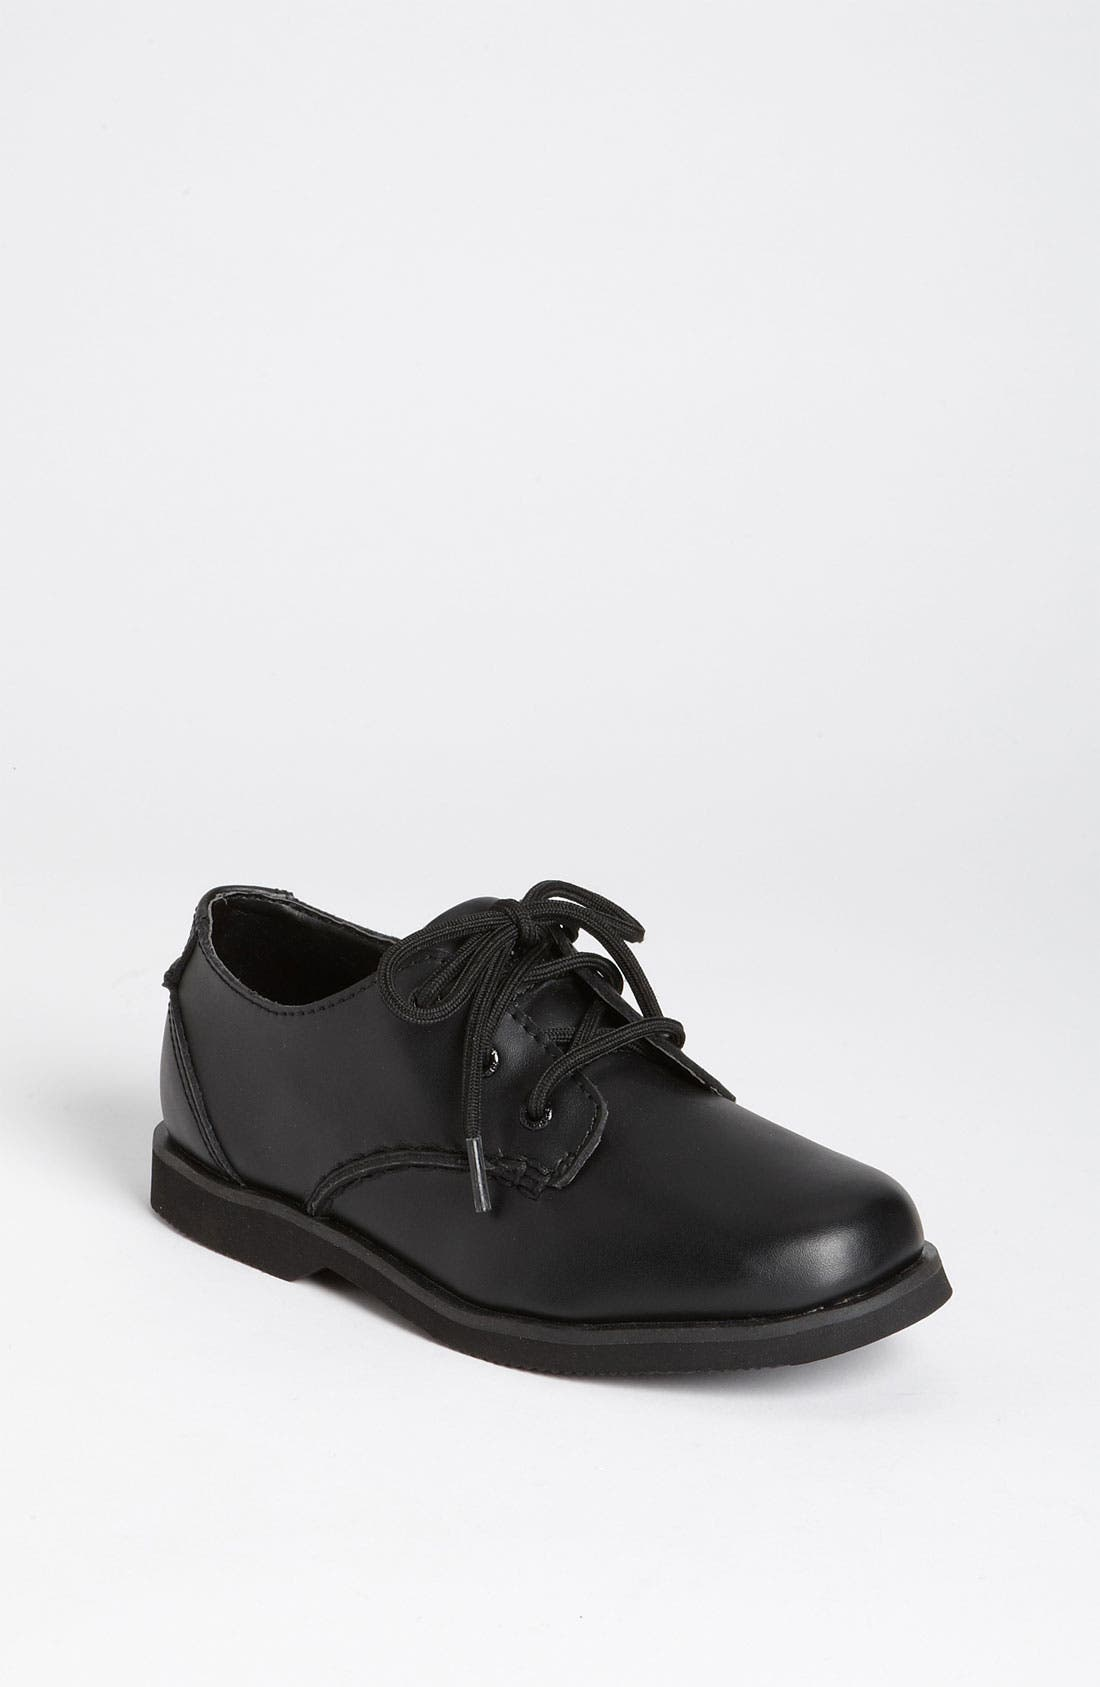 Main Image - Sperry Top-Sider® Kids 'Harpin' Oxford (Toddler & Little Kid)